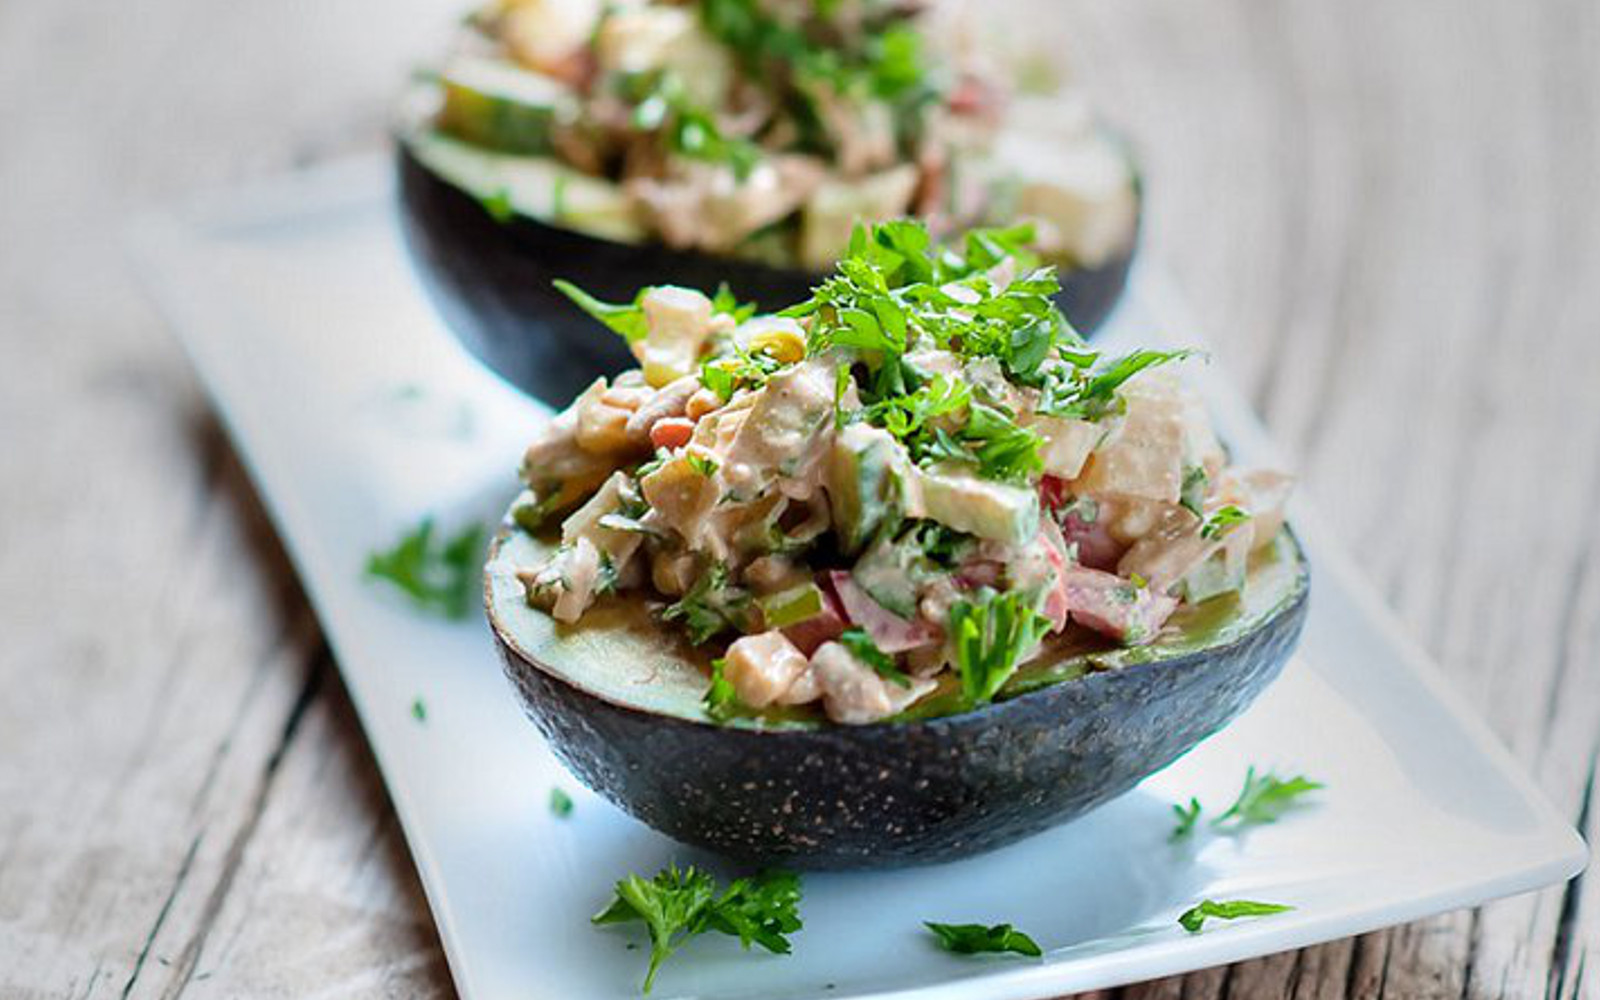 Chipotle Vegetable Stuffed Avocado